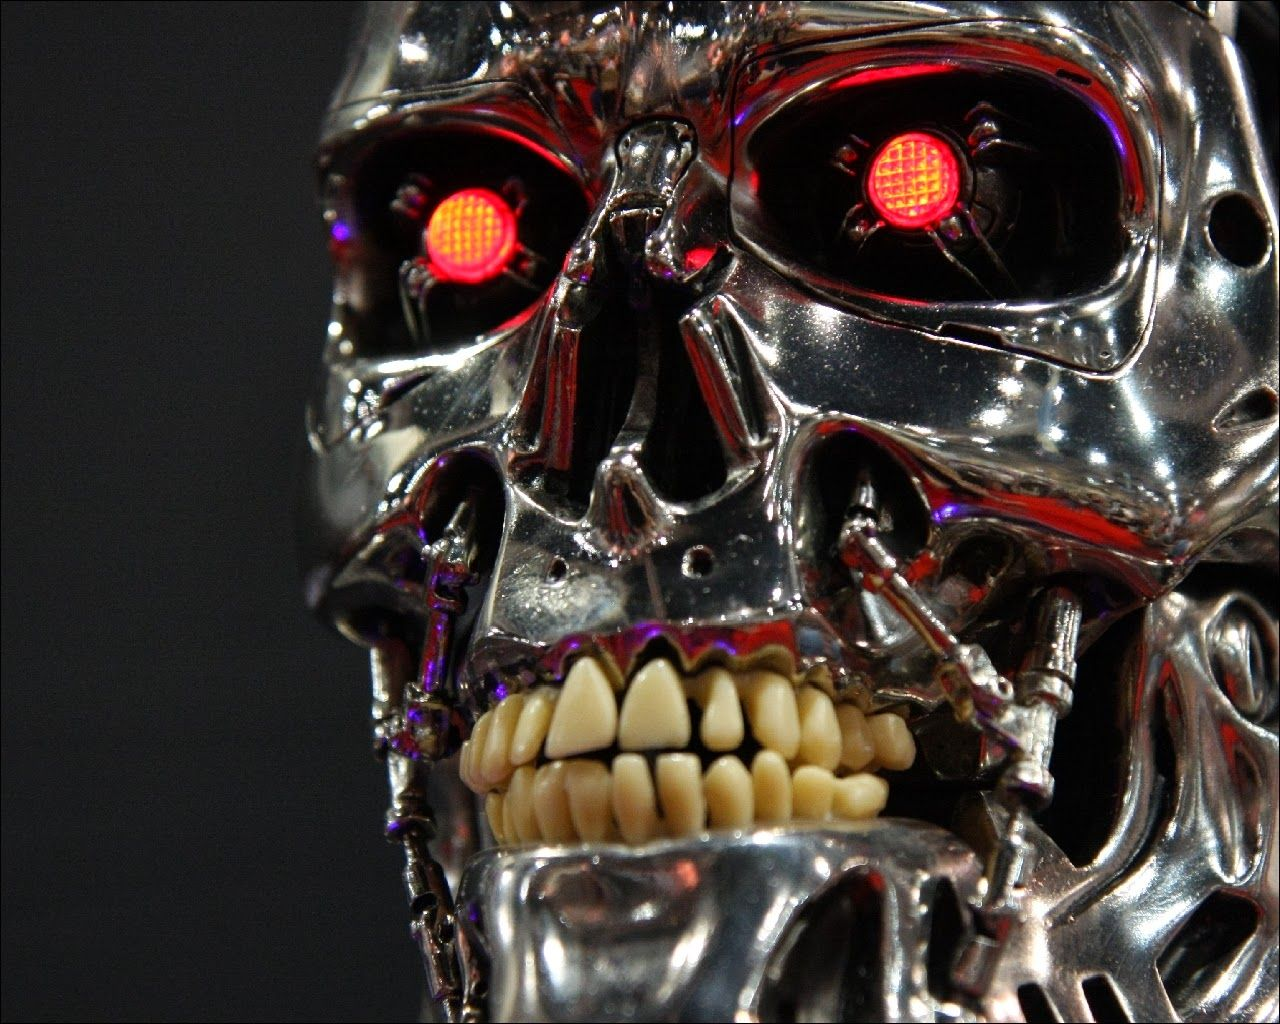 Scary robot face google search character design for Terminator face tattoo